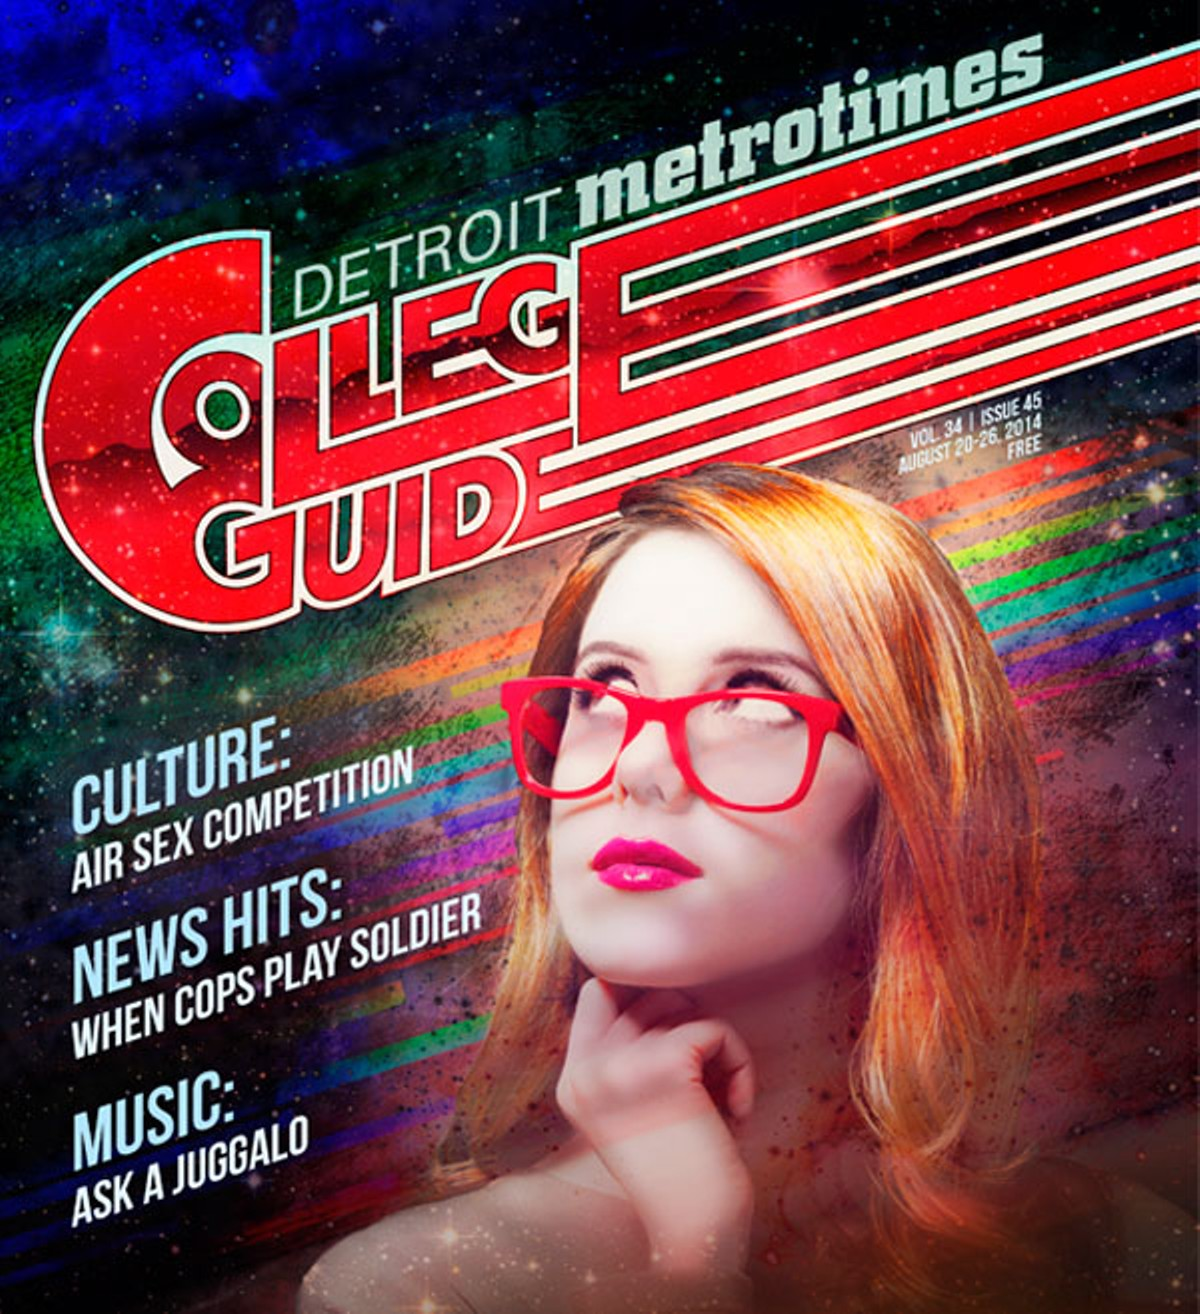 mt_collegeguide_cover_081814.jpg